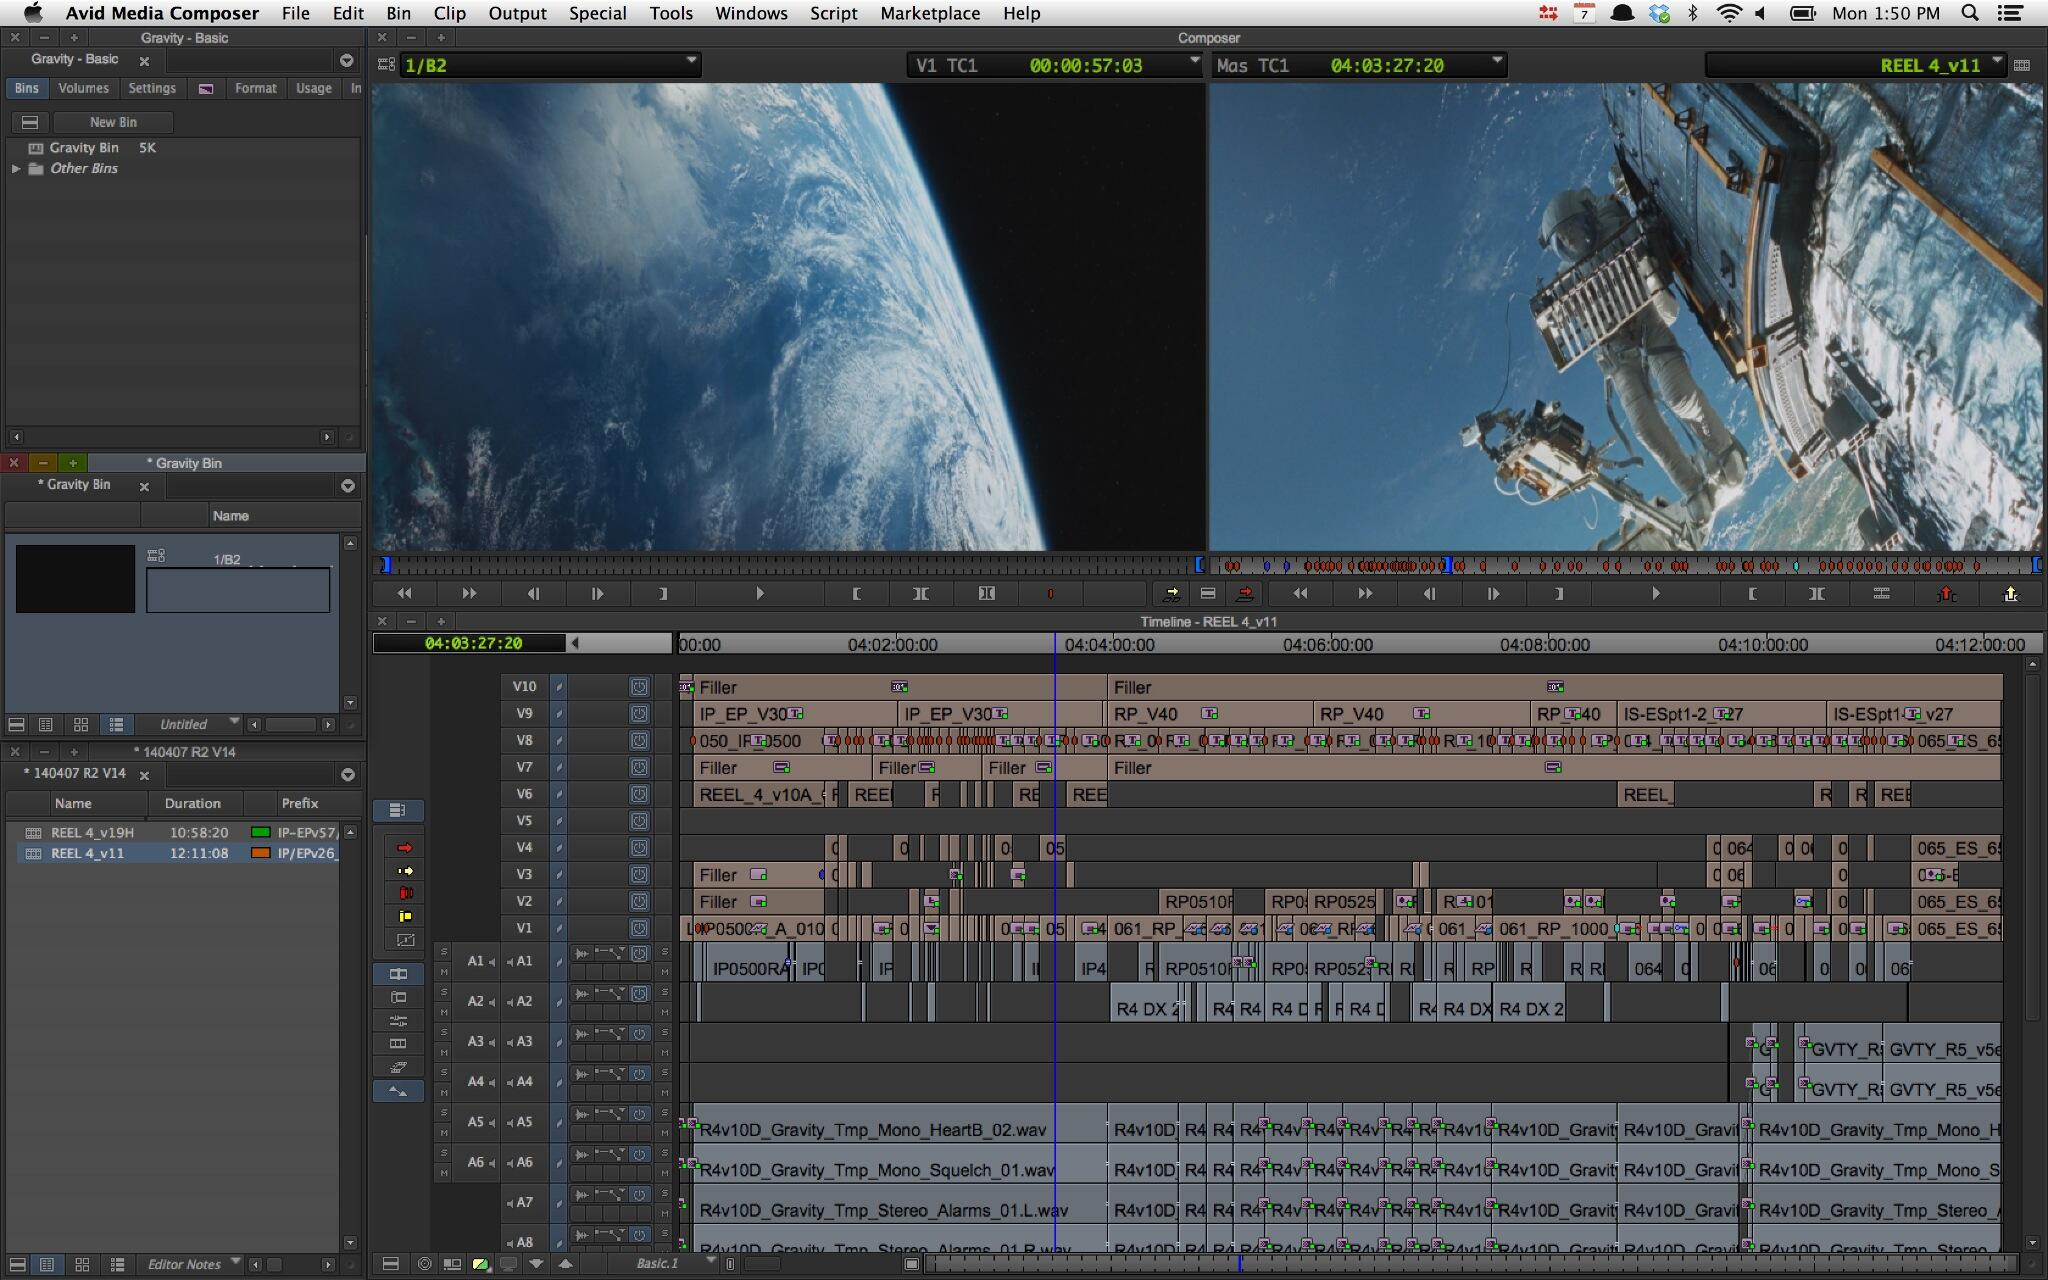 Making of Gravity - Editors Timeline